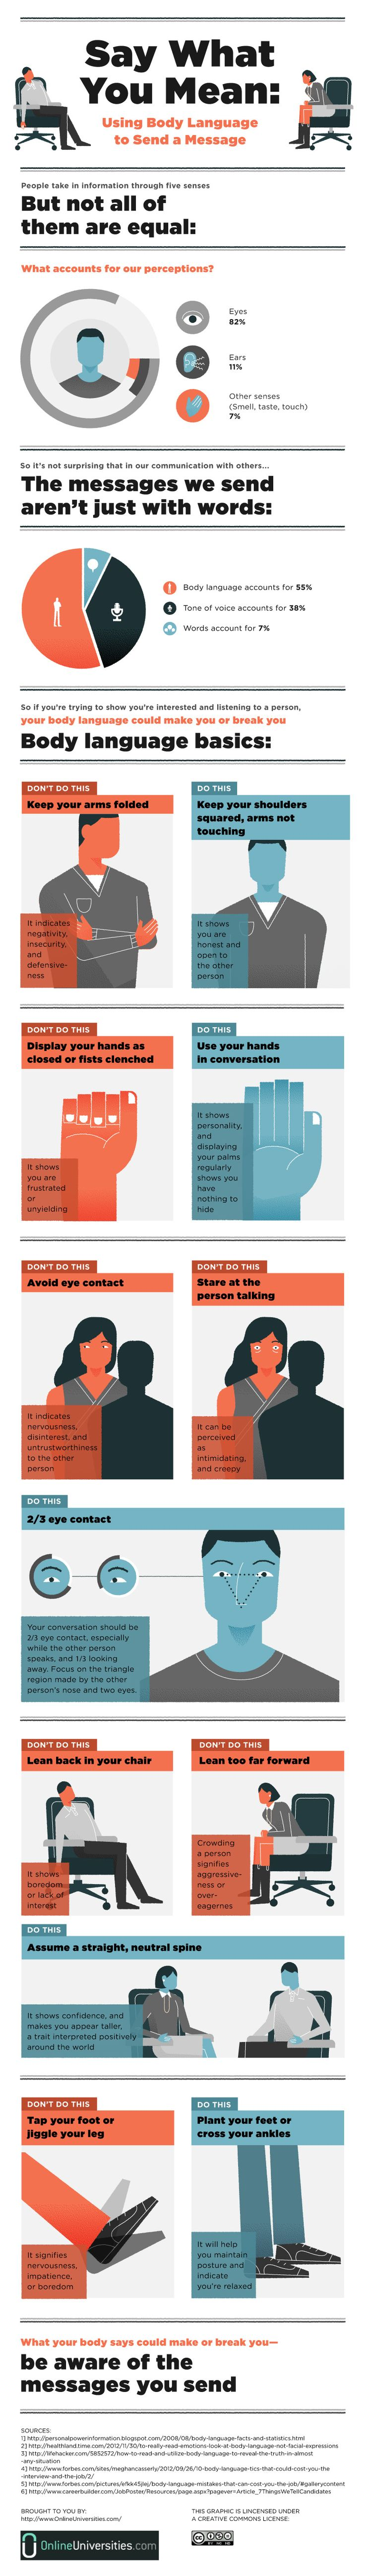 best ideas about reading body language creative 7 surprising things your body language says about you